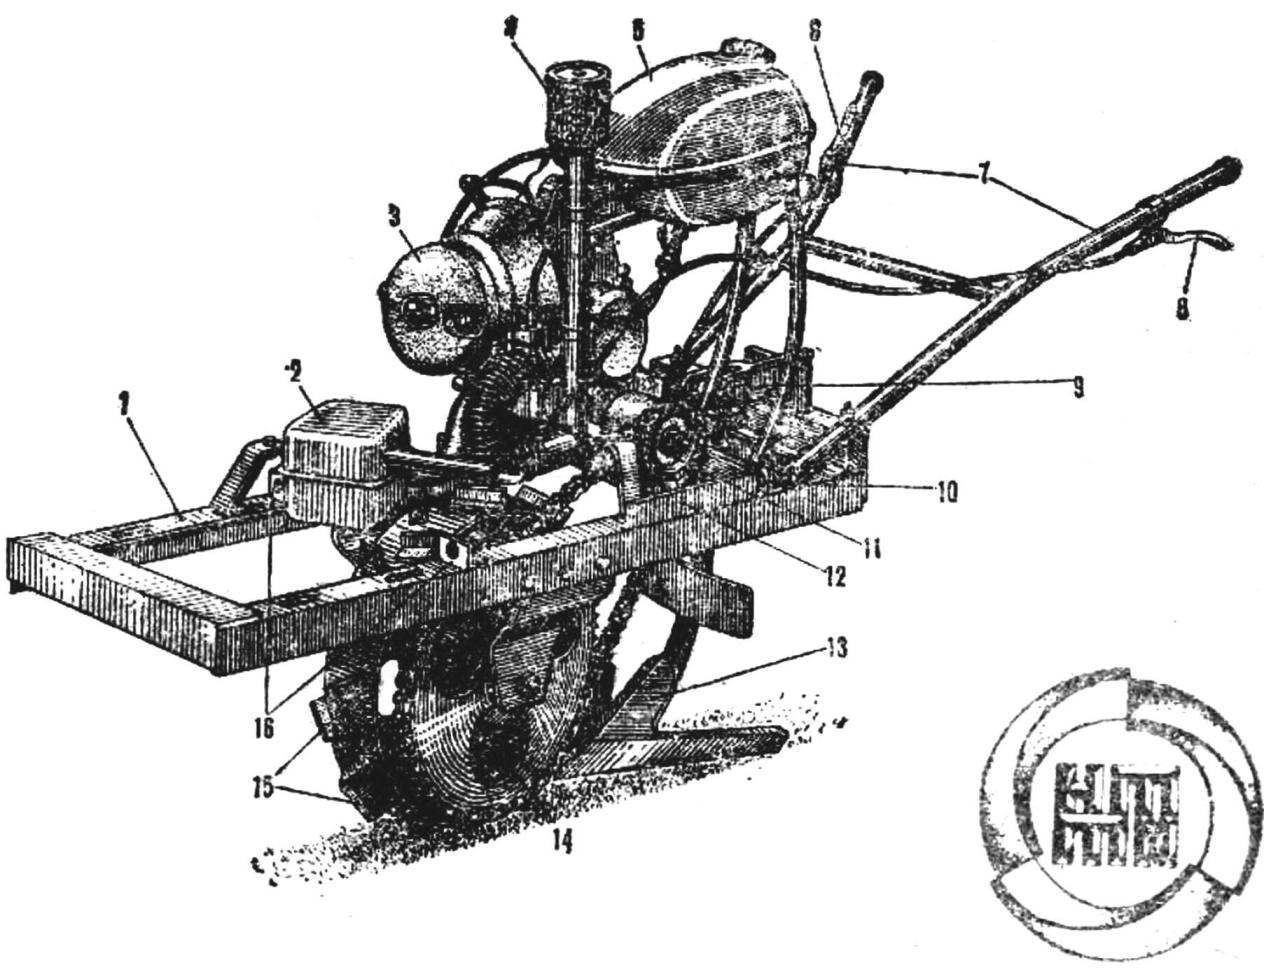 Fig. 1. Self-propelled plow-cultivator